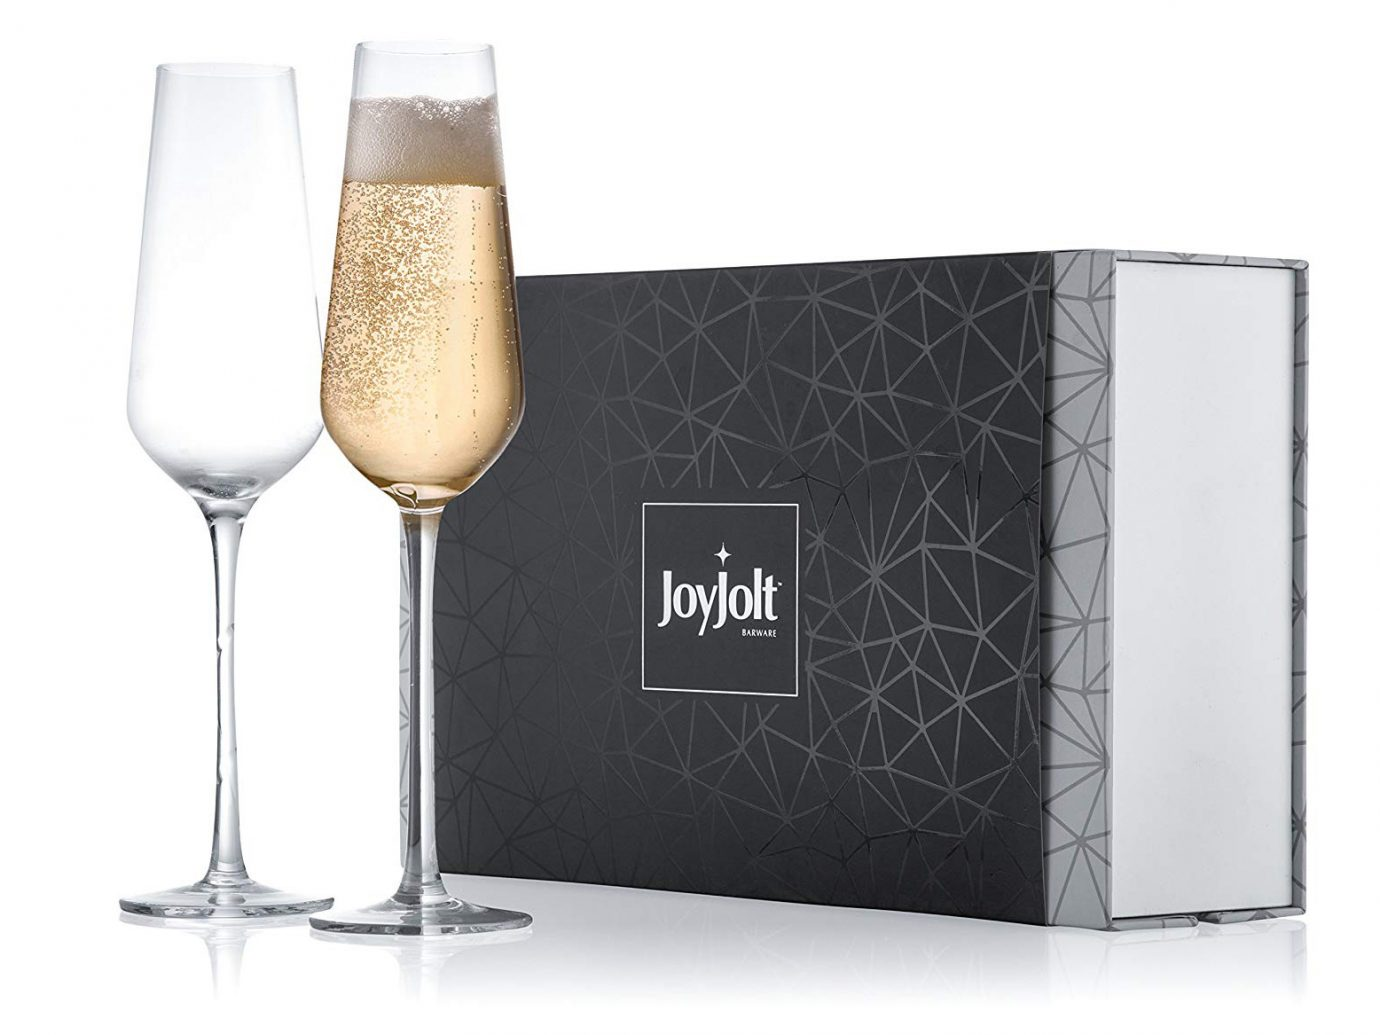 JoyJolt Meille High End Crystal Champagne Glasses